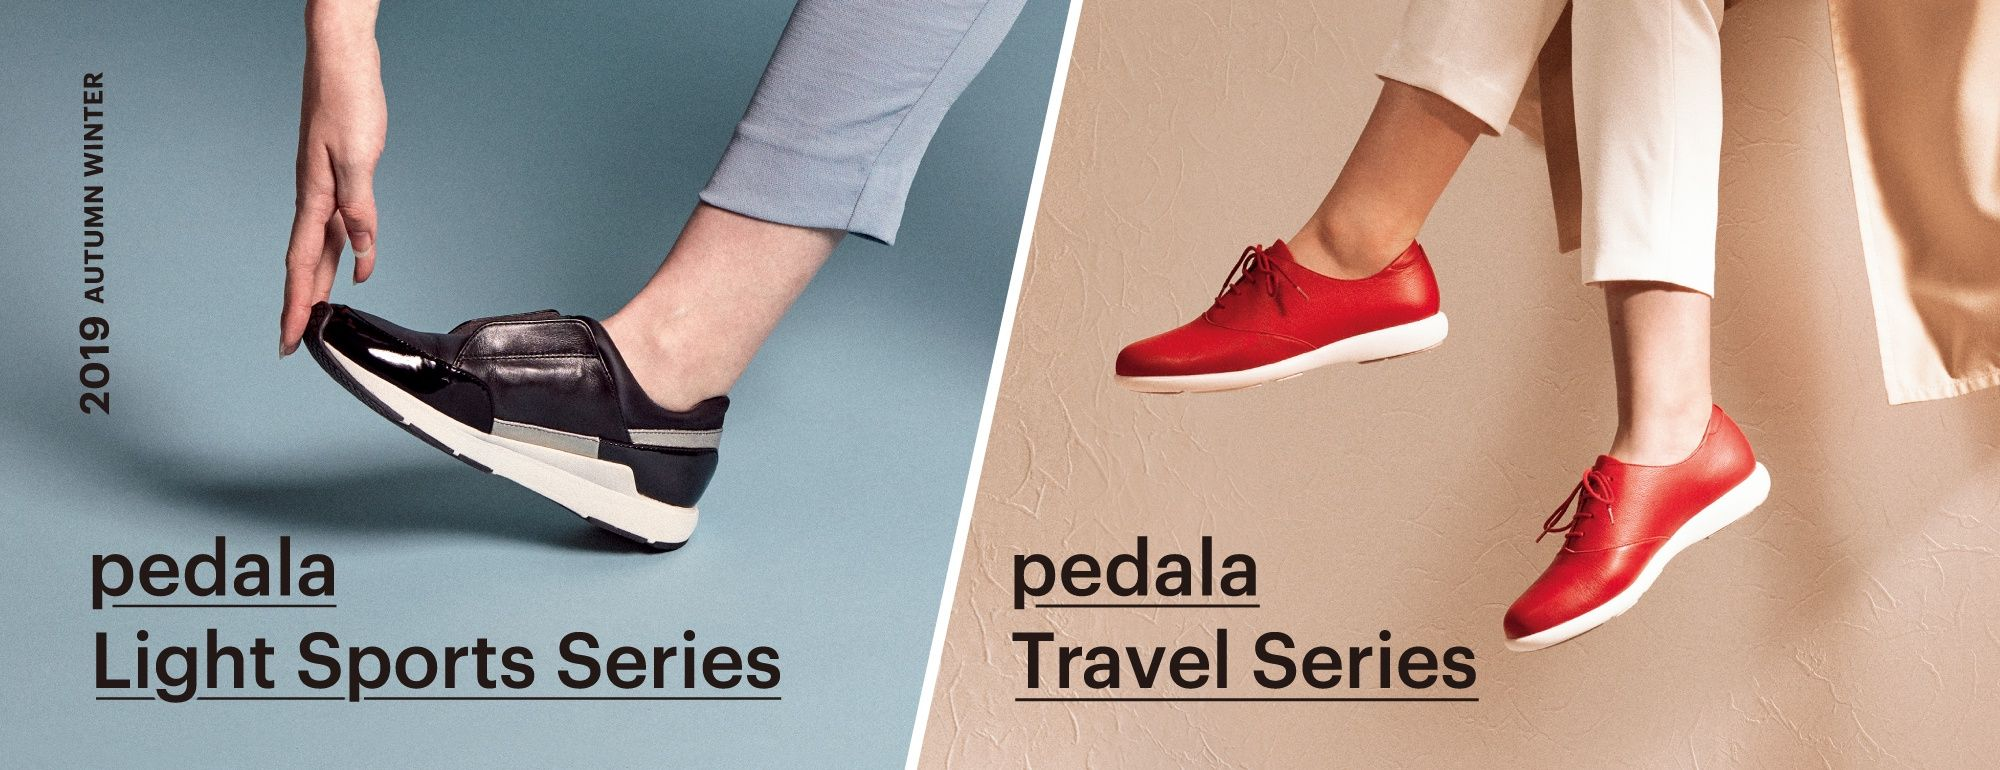 2019 AUTUMN WINTER pedala Light Sports Series / pedala Travel Series